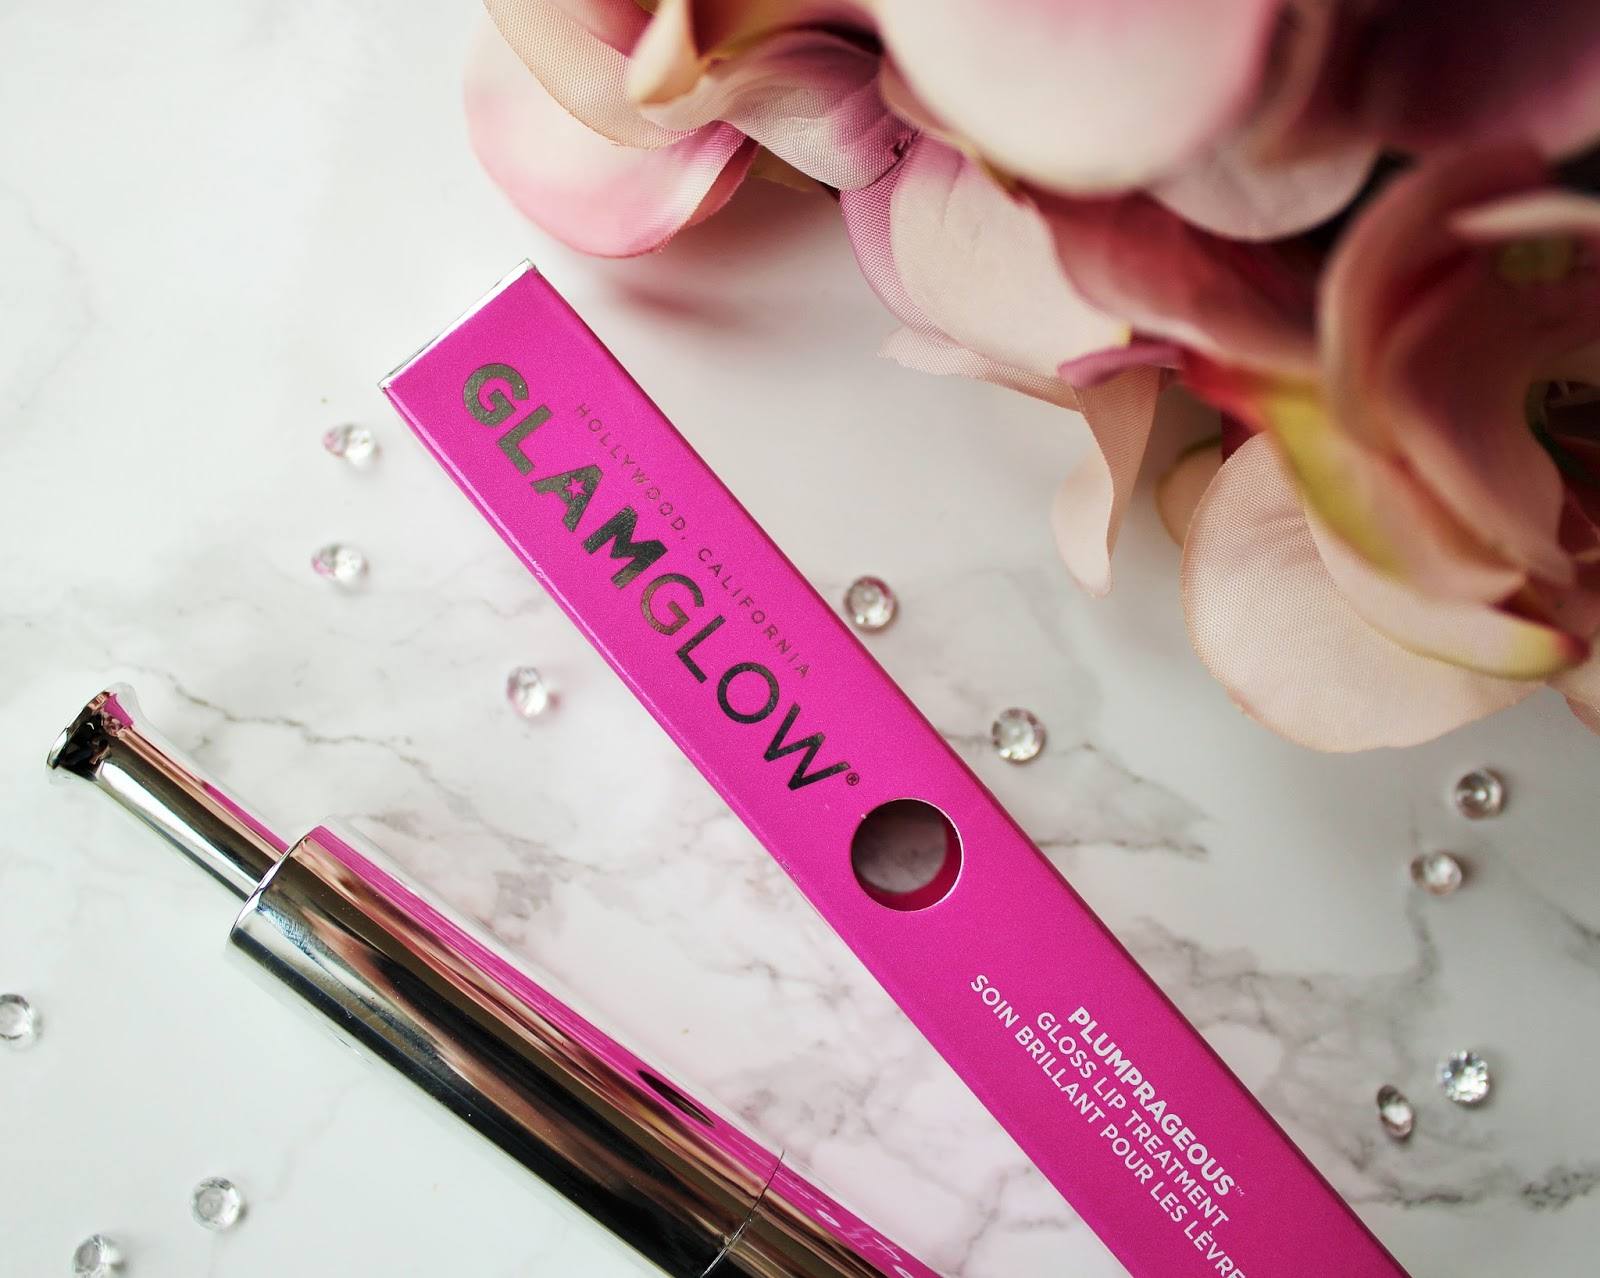 My Favourite Lip Care Products - 5 - Glamglow Plumprageous Lip Gloss Treatment